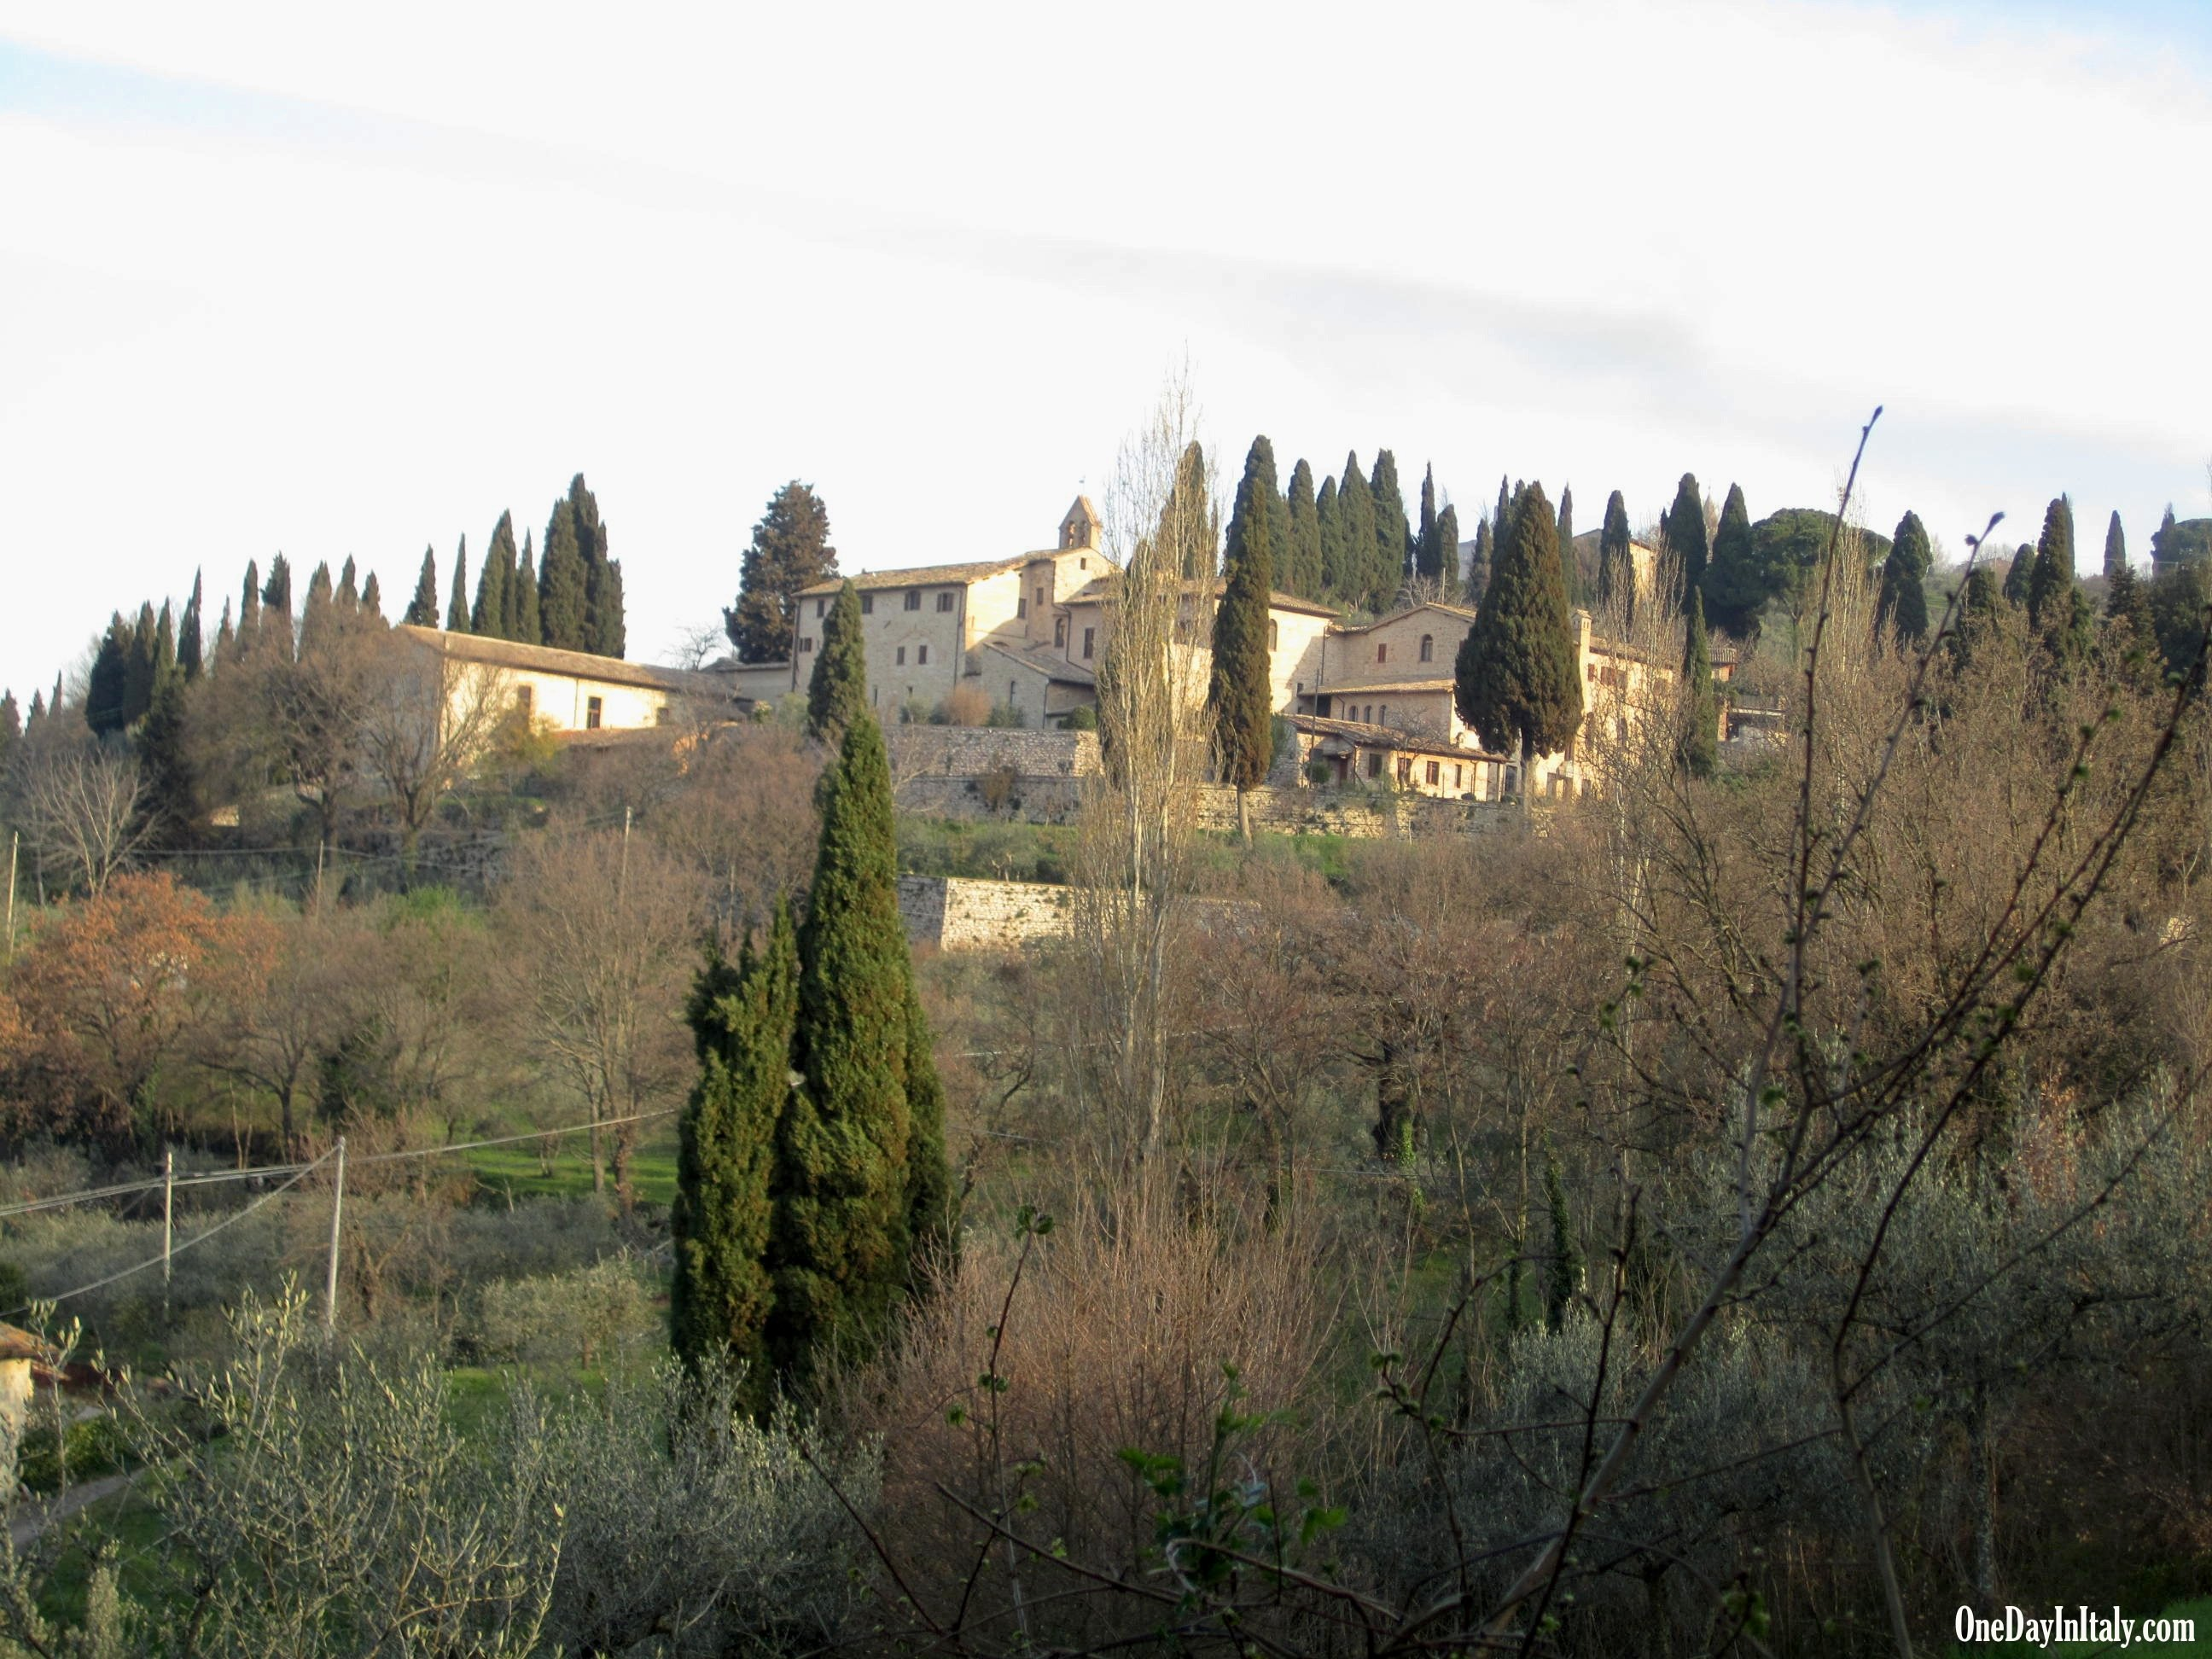 Countryside near San Damiano